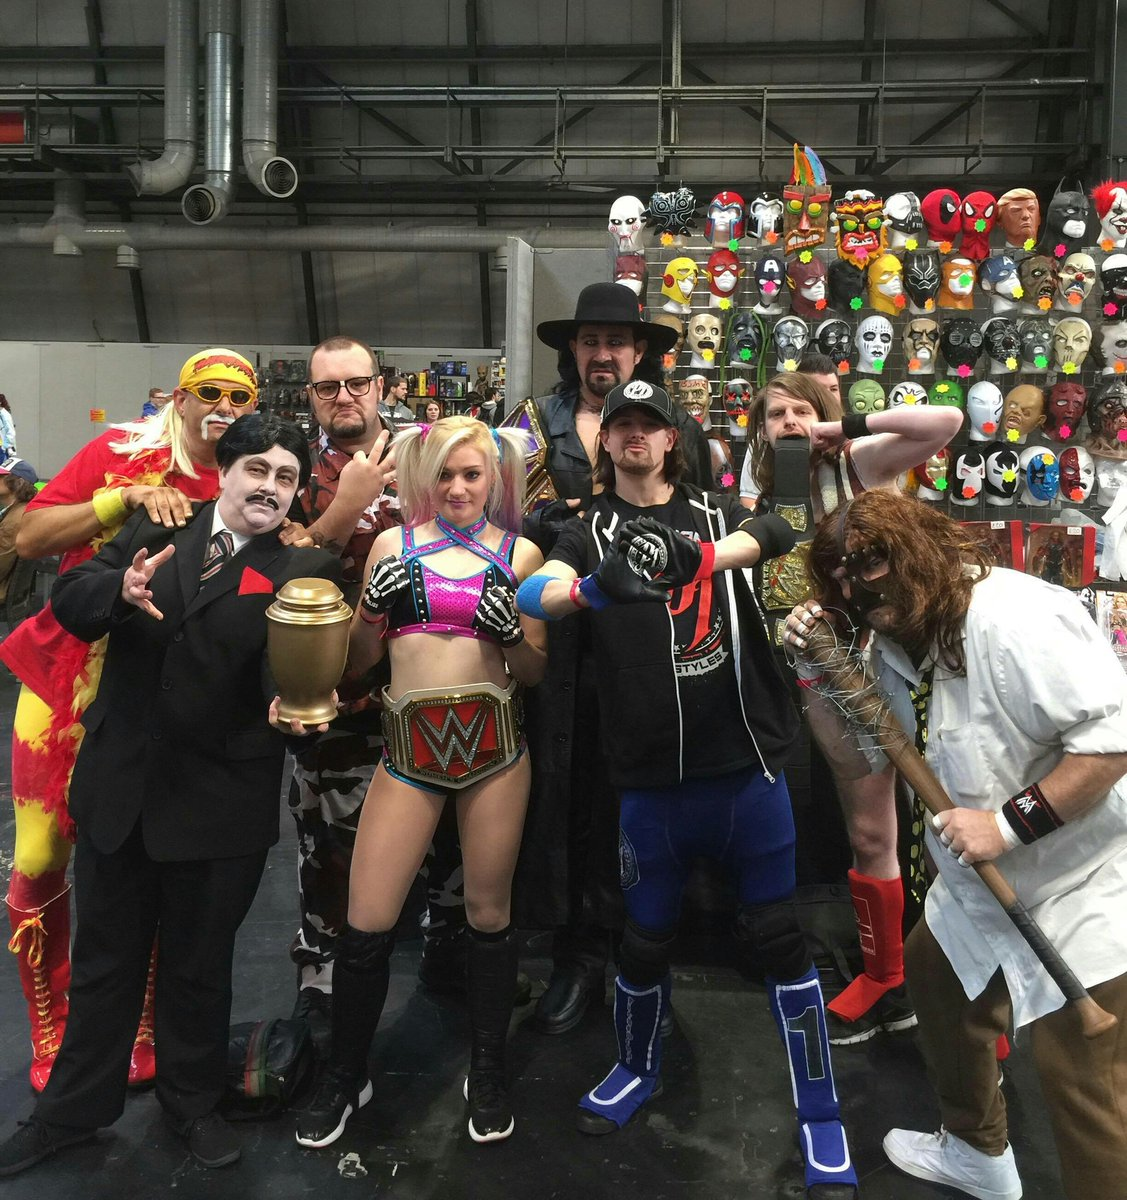 The crew is ready for day 2 in association with @TOYSANDMASKScom  #mcmBHM17 #Cosplay #Mankind #PaulBearer<br>http://pic.twitter.com/SUZQHNn38R